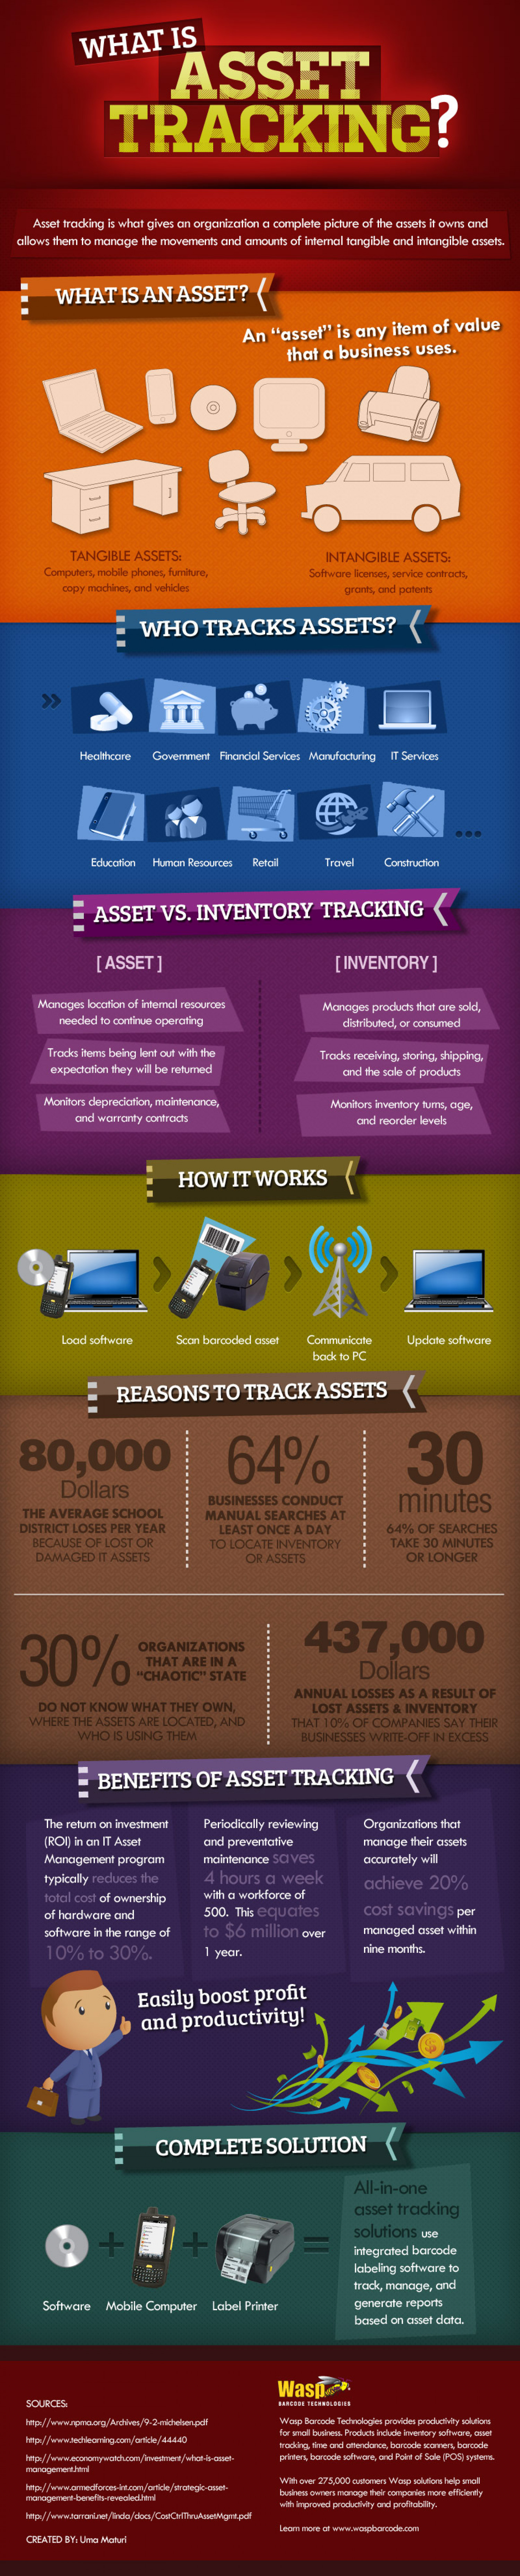 What Is Asset Tracking Infographic